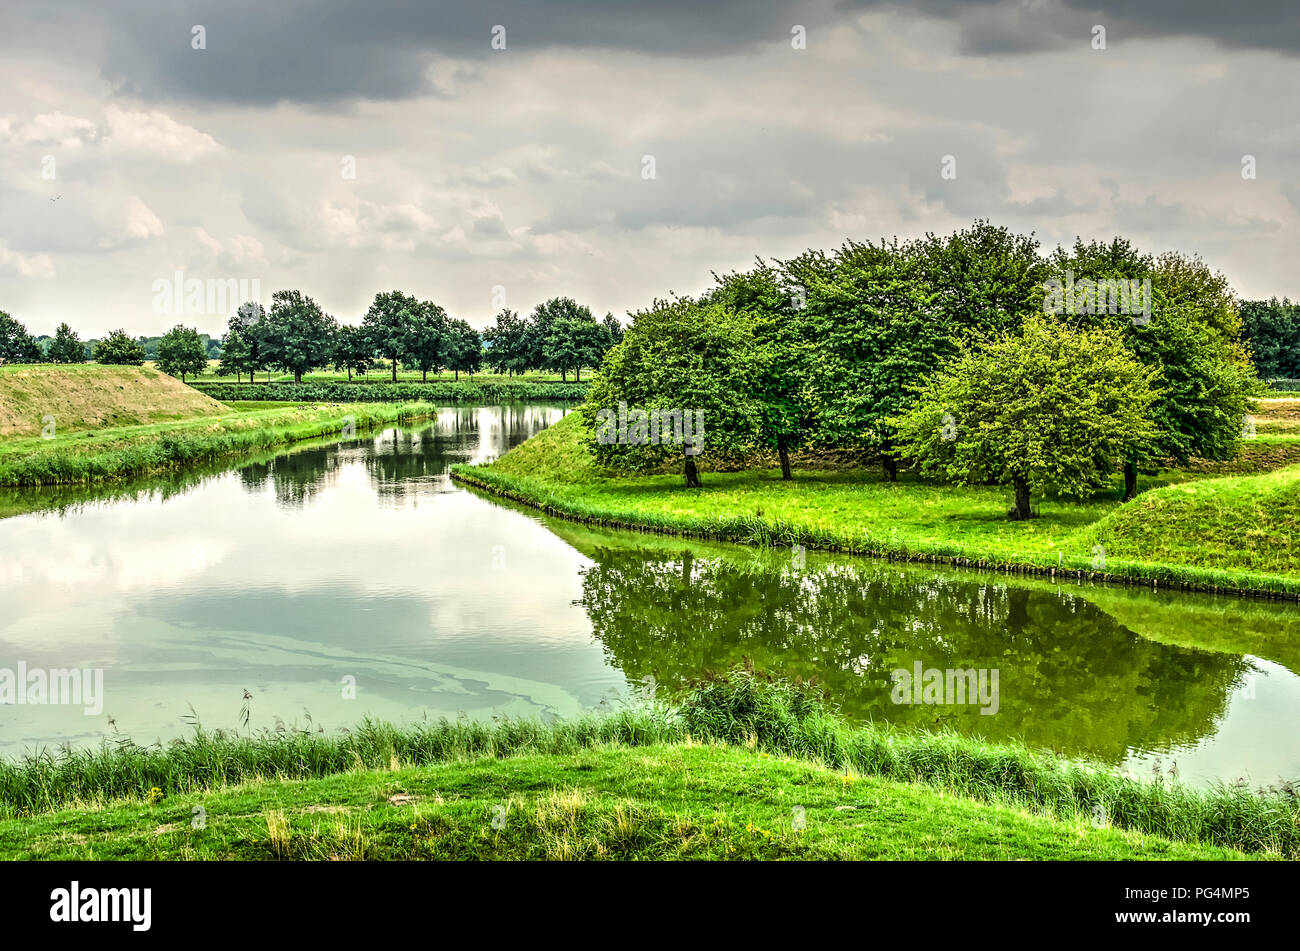 View from the ramparts of the fortified town of Leusden, The Netherlands towards a group of rees reflecting in one of the surrounding moats - Stock Image